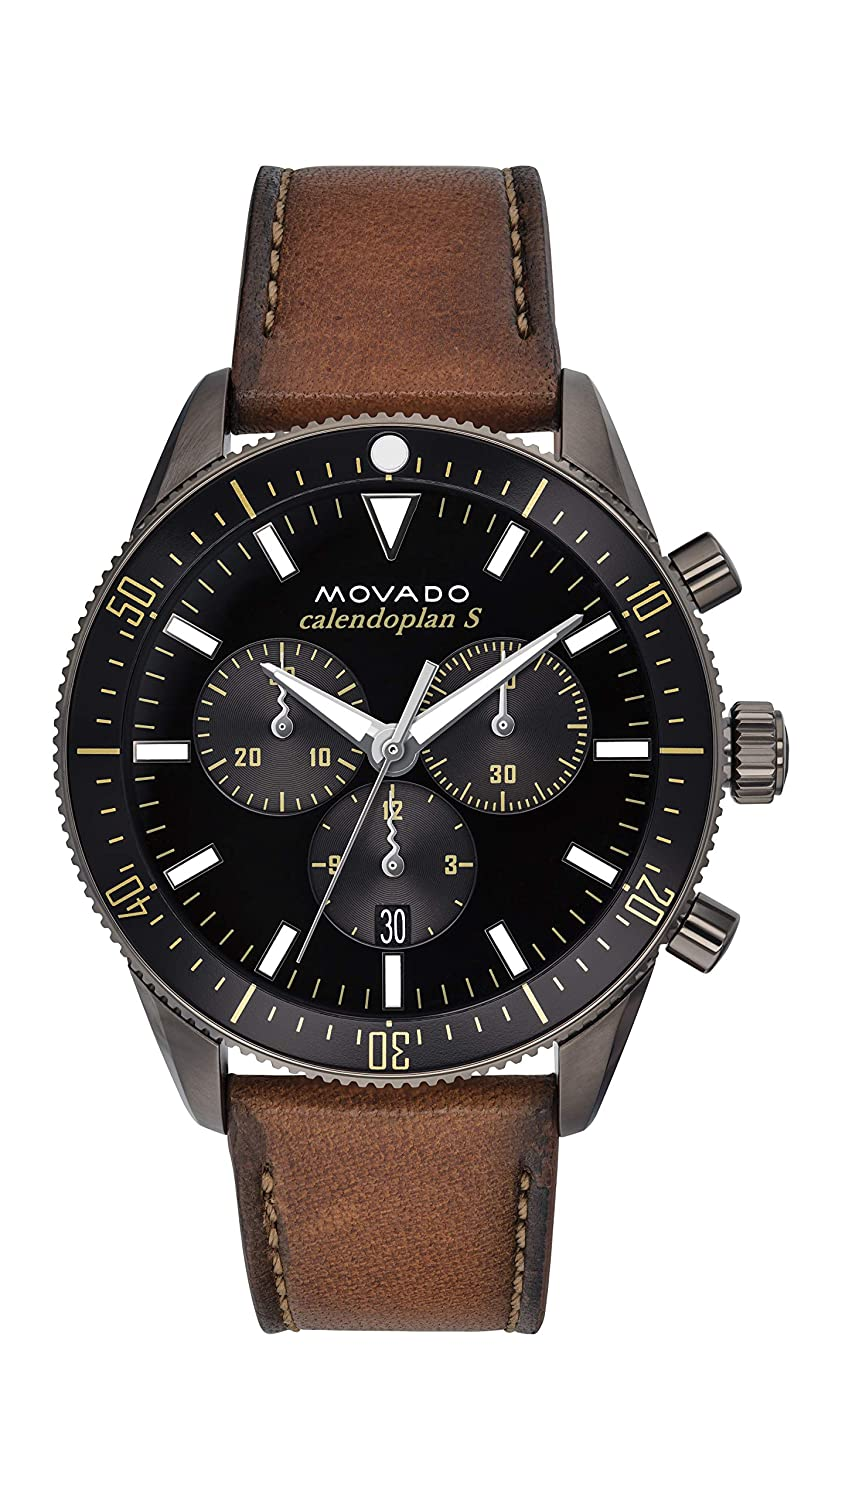 88d1611c7 Amazon.com: Movado Men's Heritage Chronograph Watch with a Printed Index  Dial, Grey/Brown/Black (Model 3650060): Watches